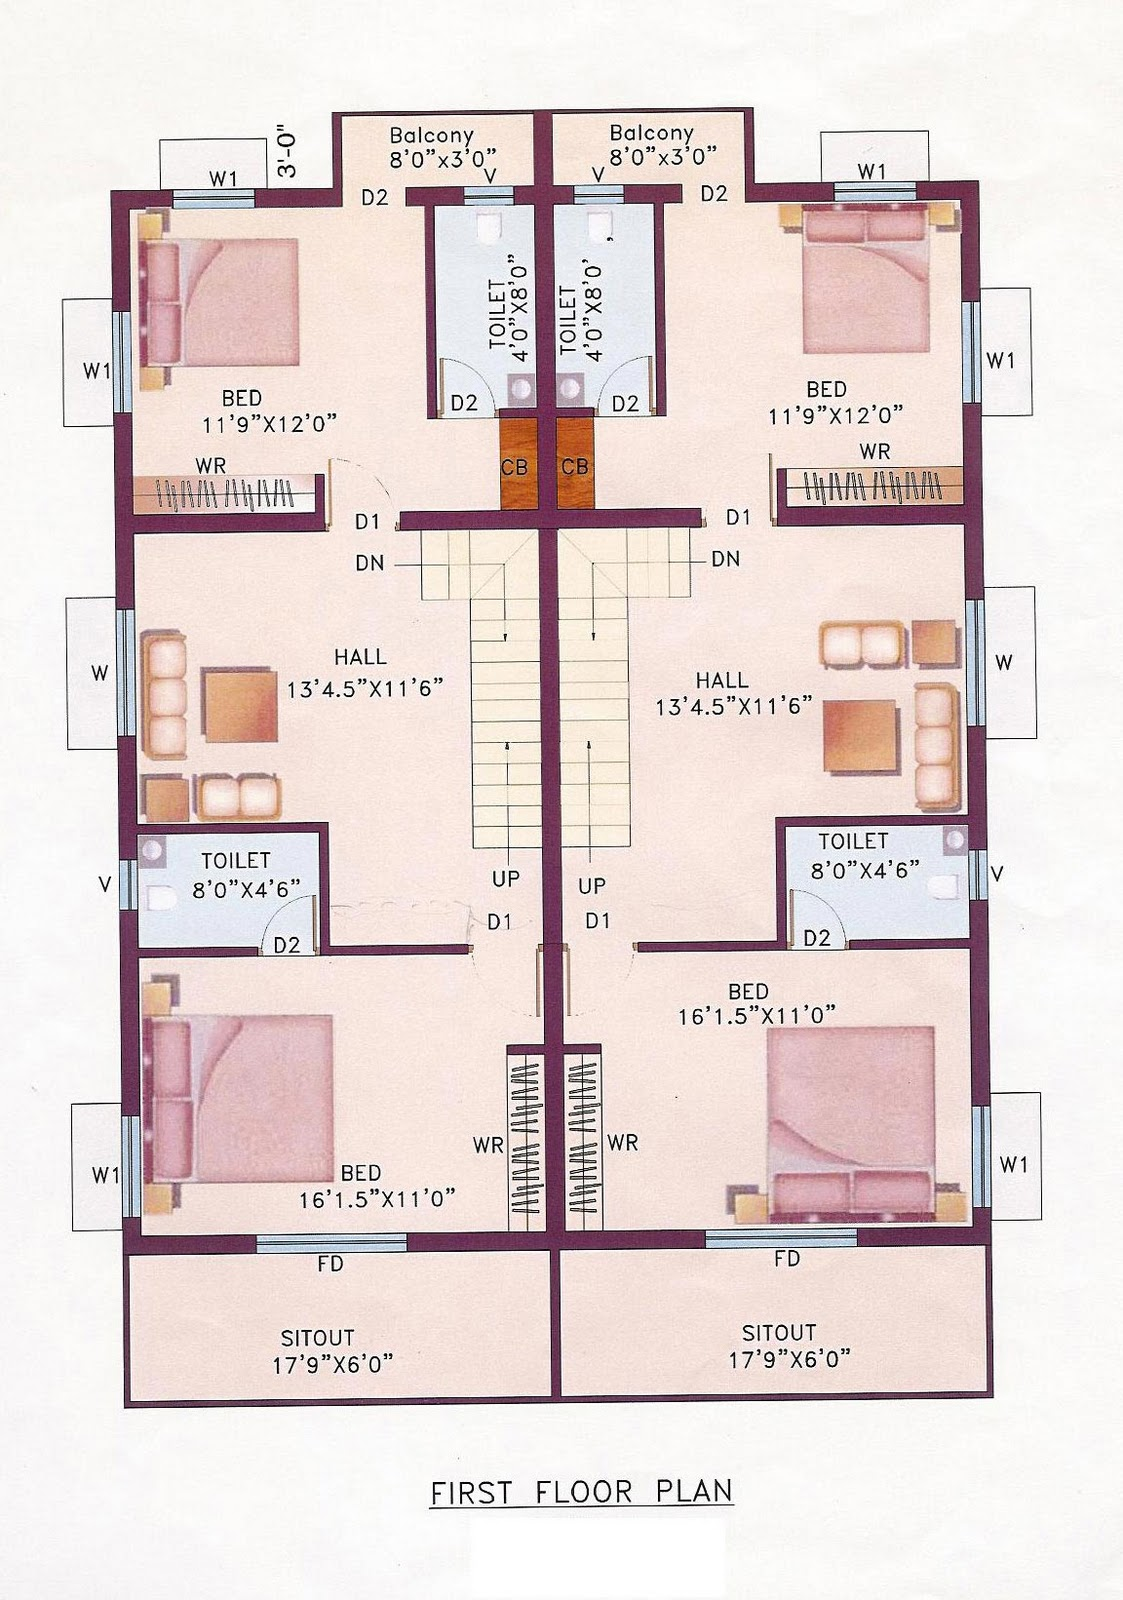 House plans and design house plans india with photos for Home plan design india